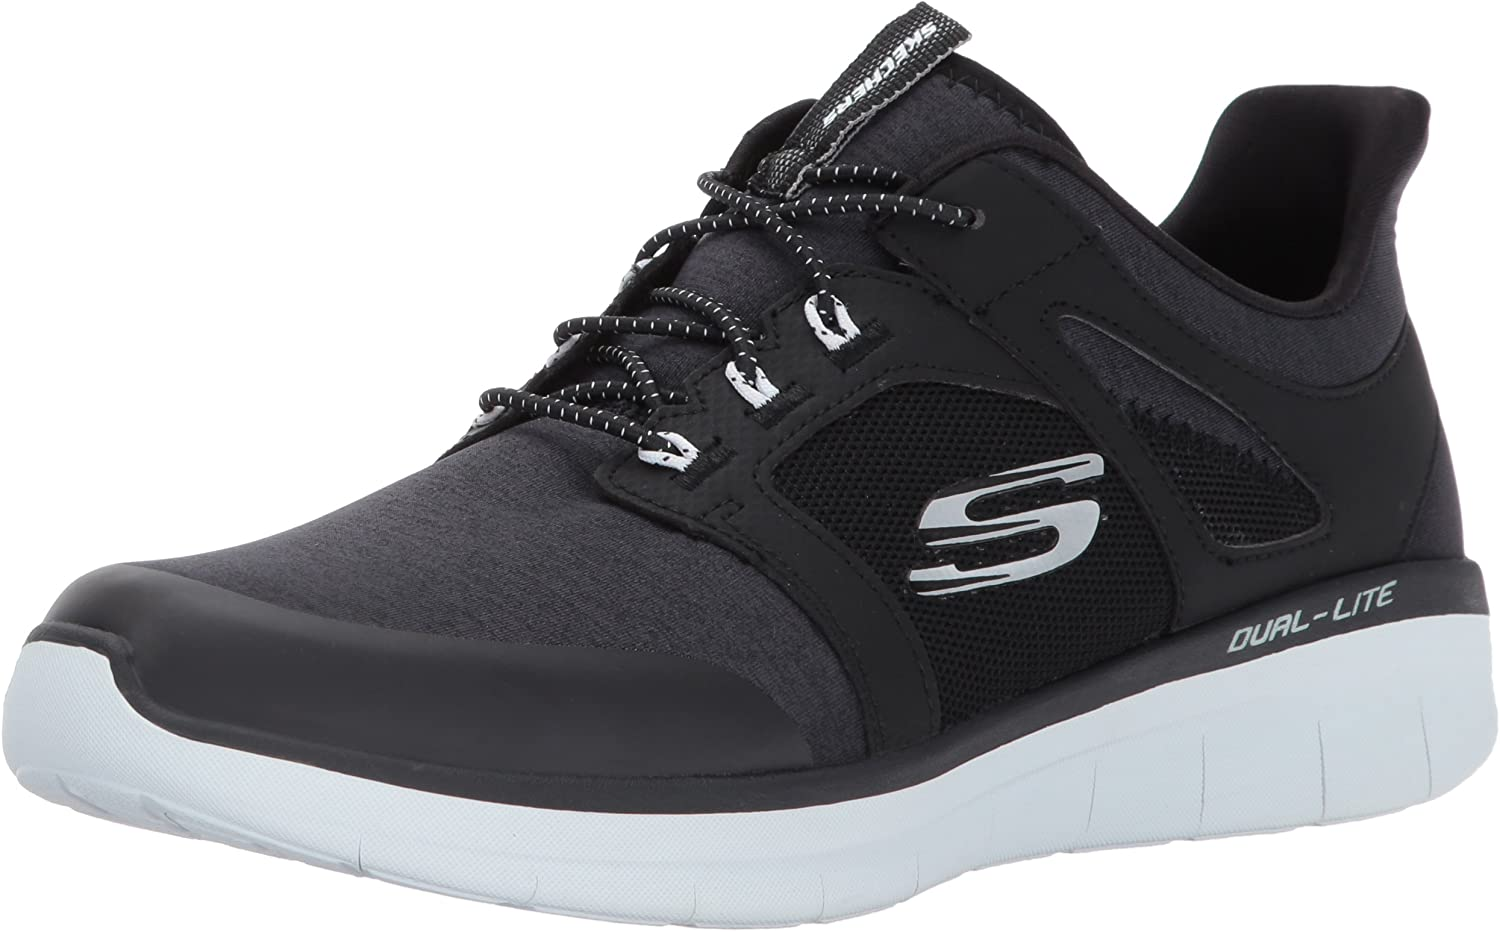 Skechers Synergie 2.0 Chekwa Mens Slip-on Trainer